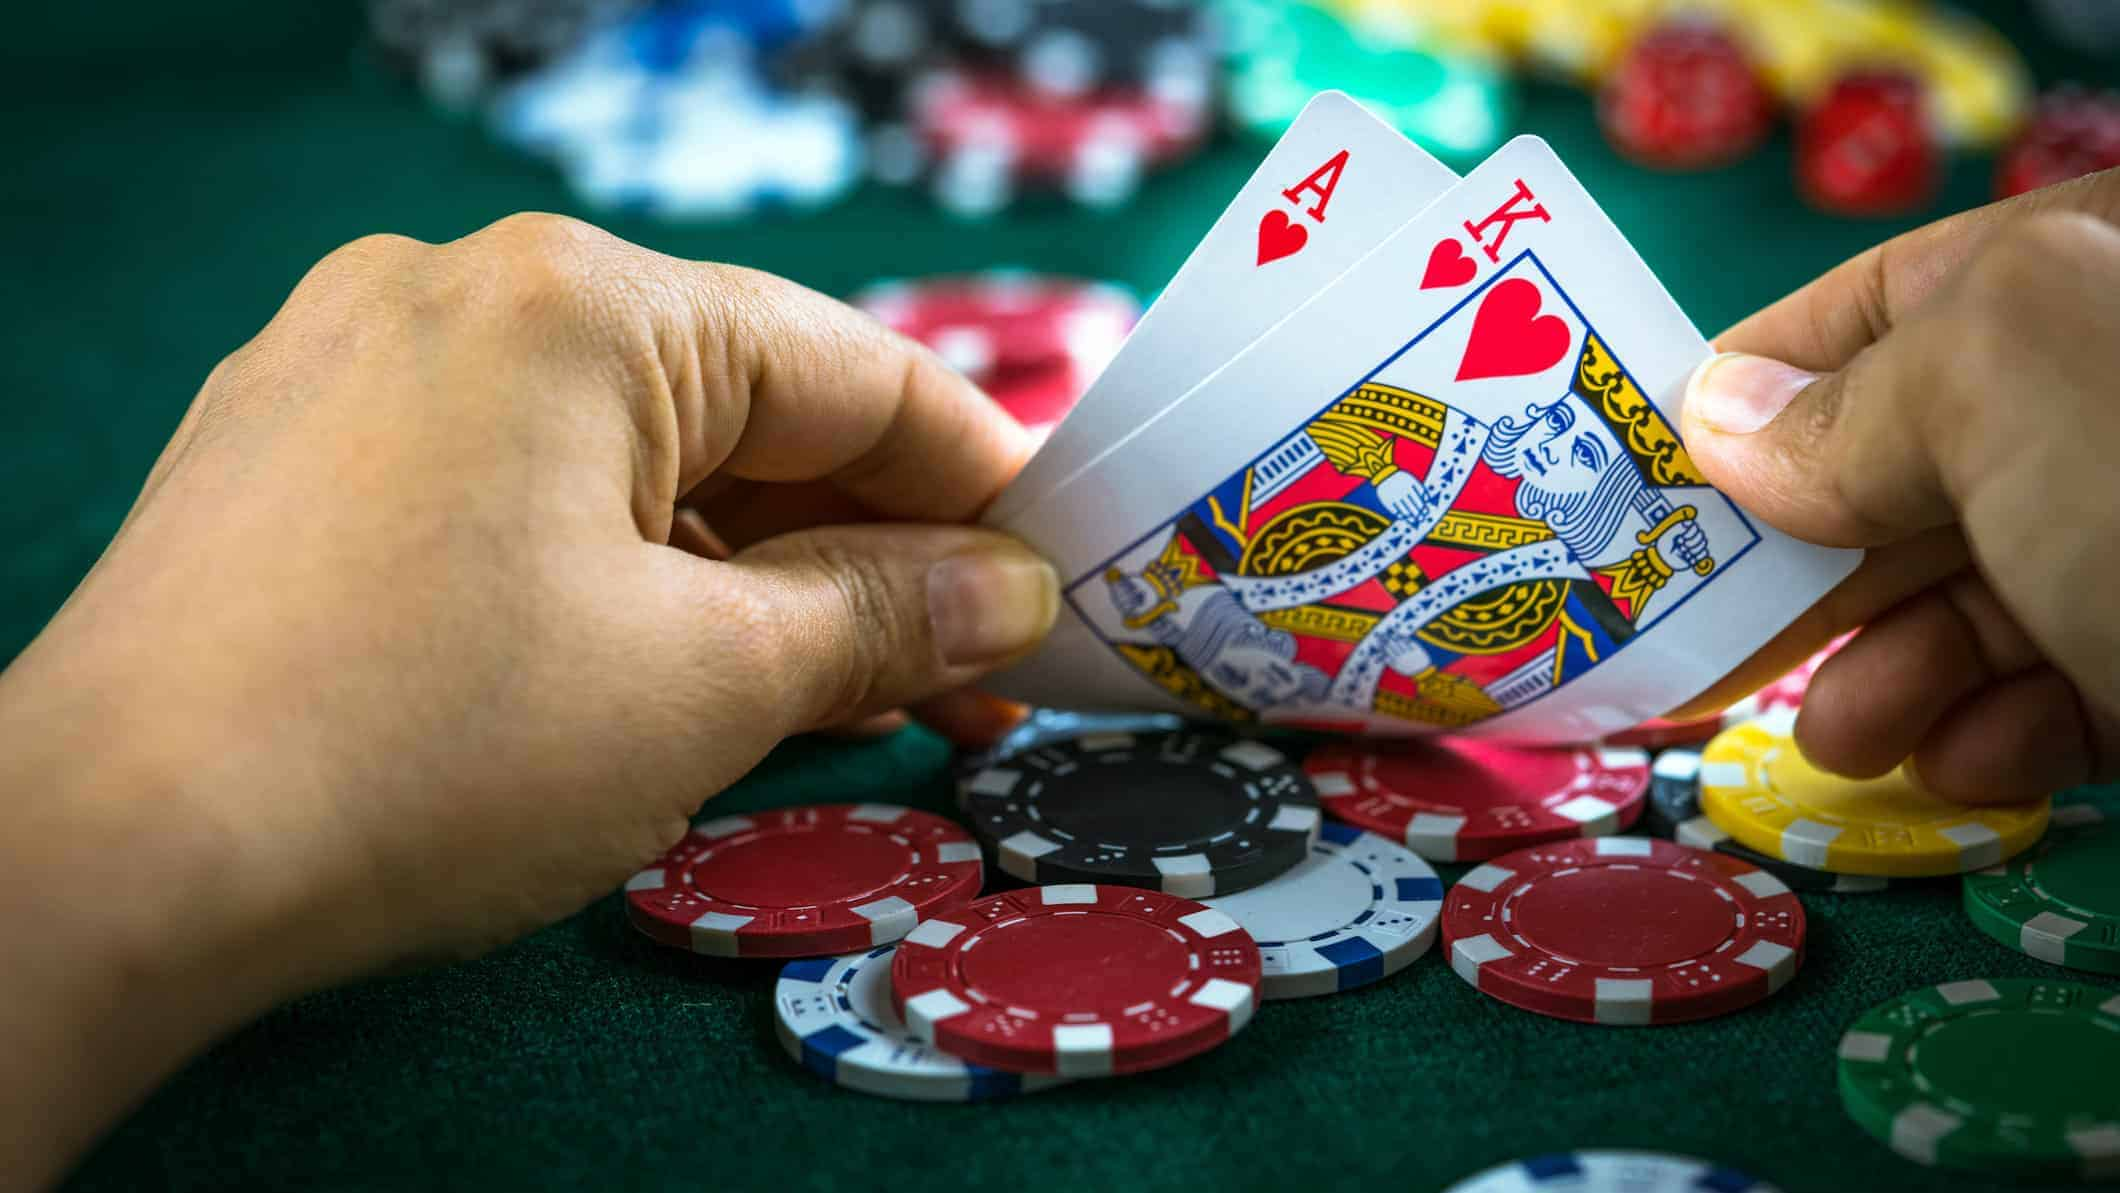 Tips To Buy Customized Poker Chips - Gambling